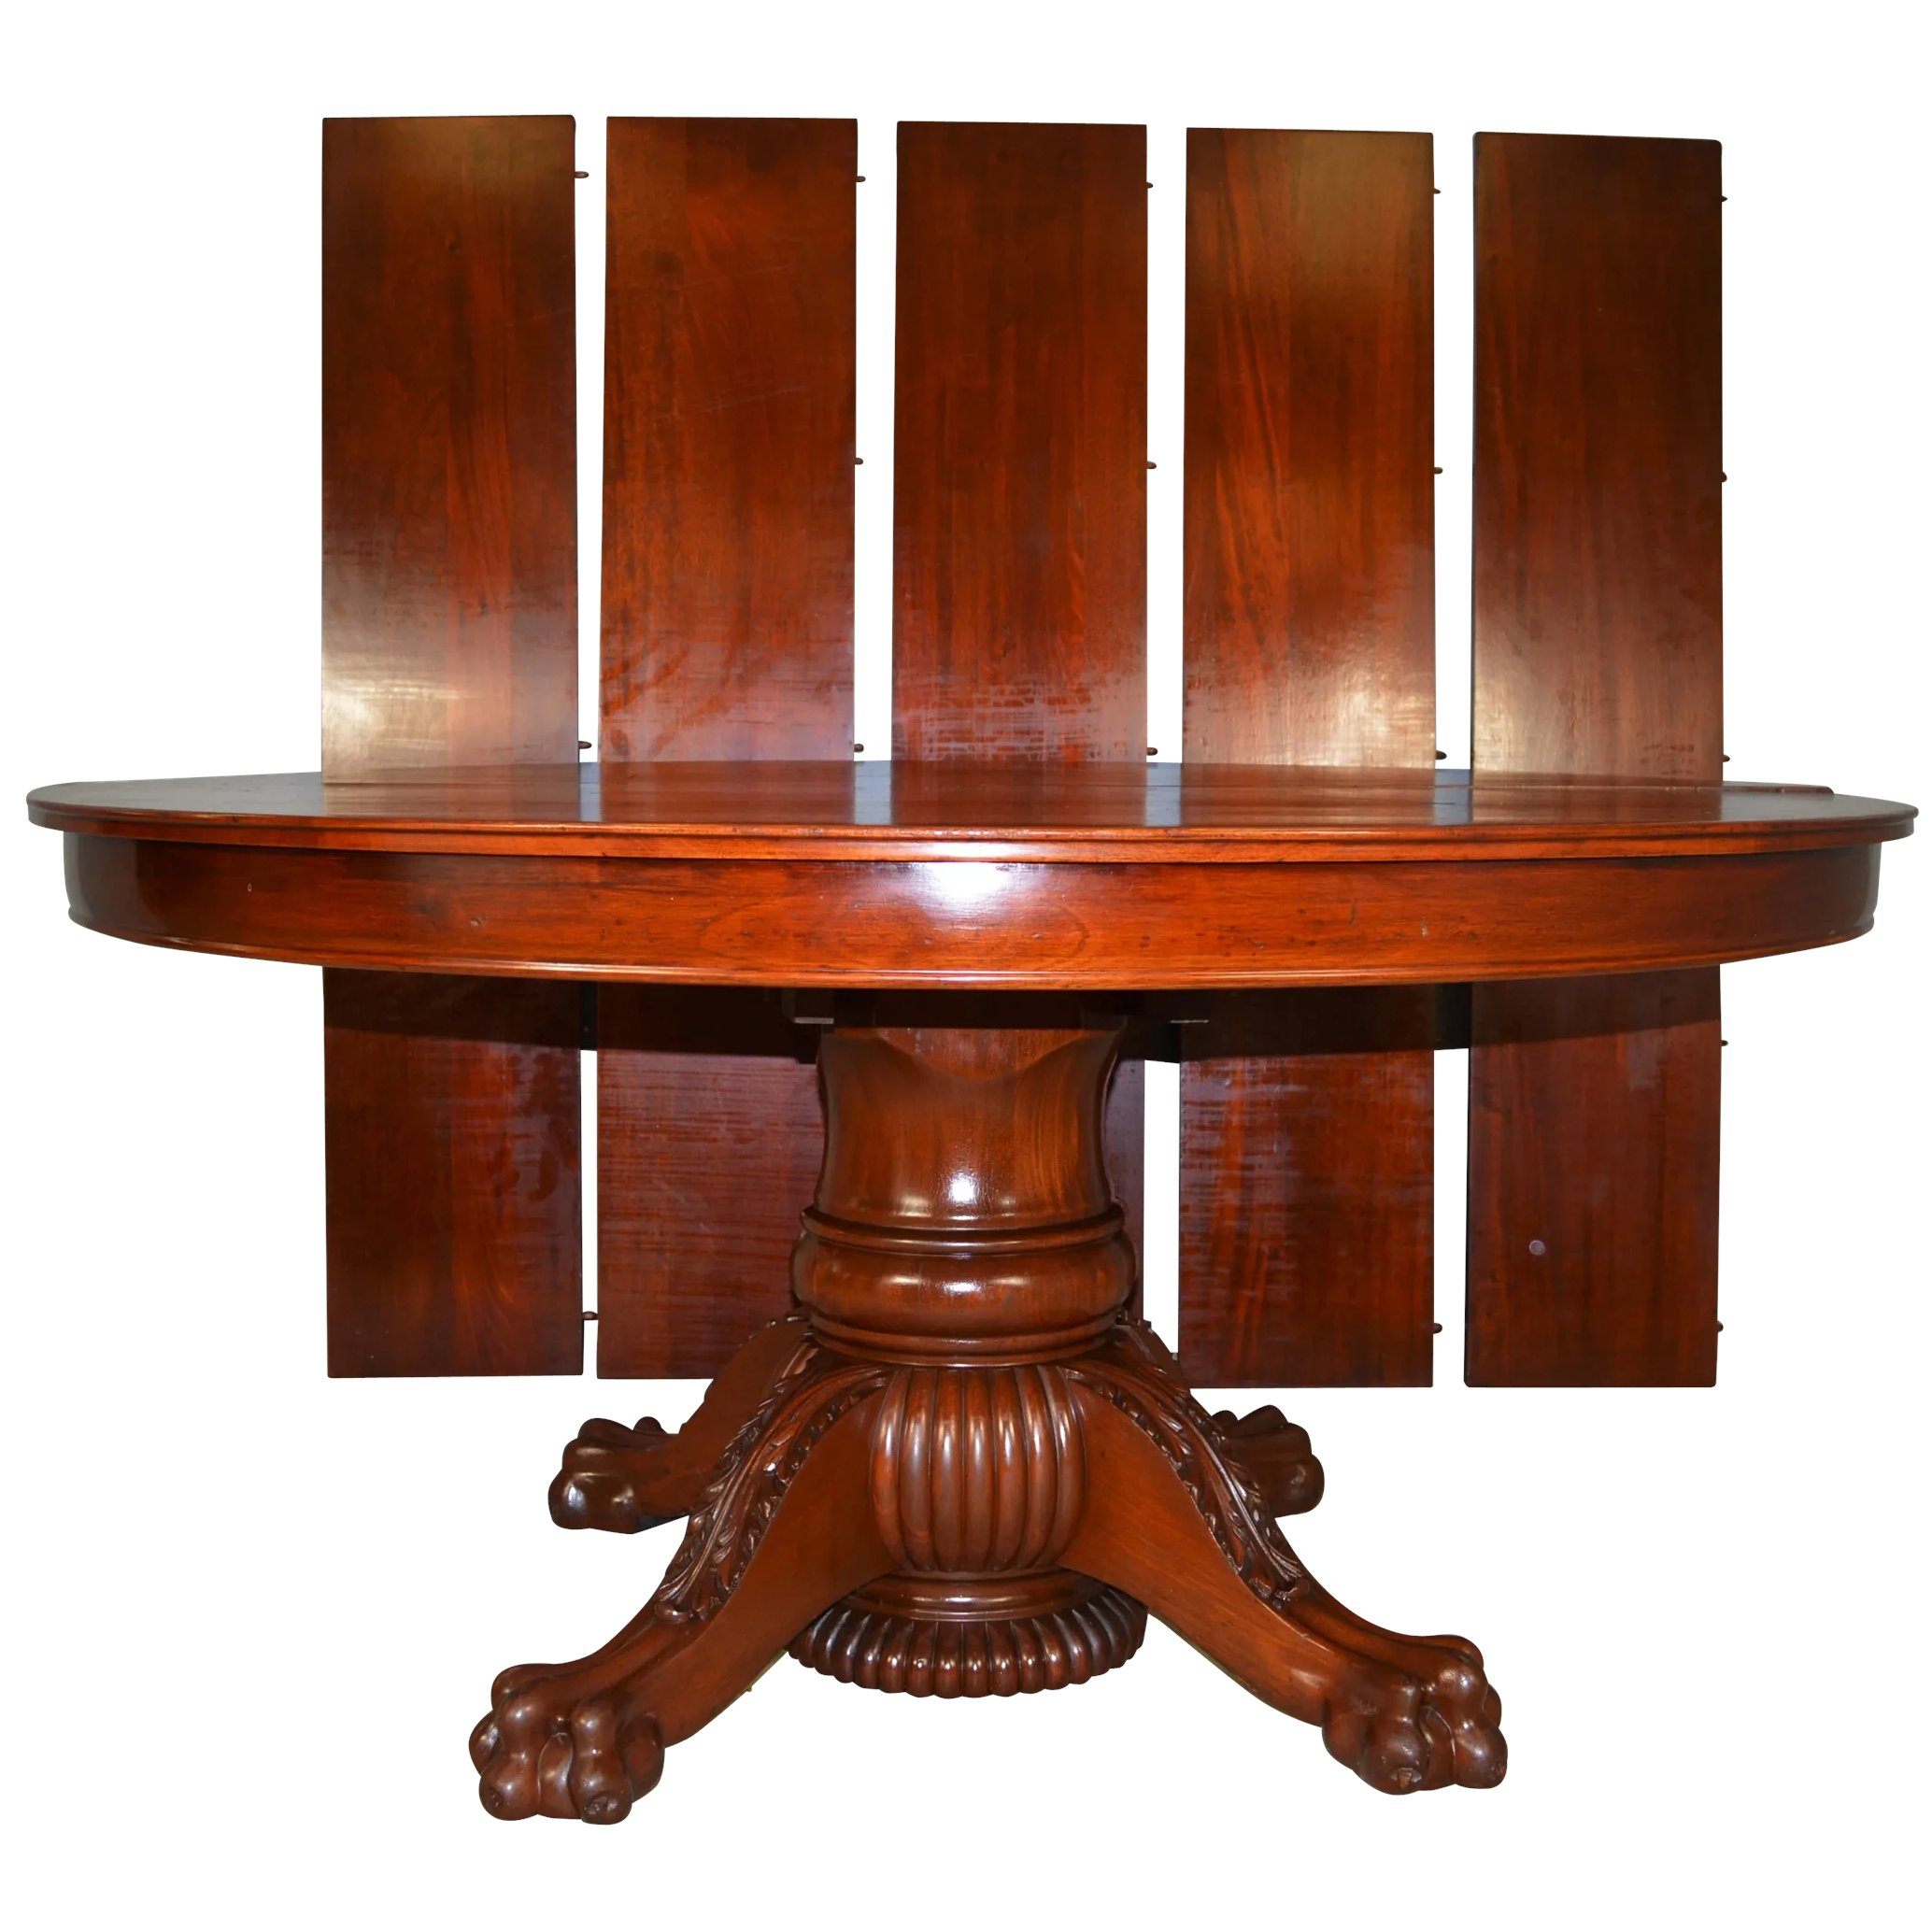 Mahogany Round 60 Inch Banquet Dining Table 5 Leaves 10 Feet Long